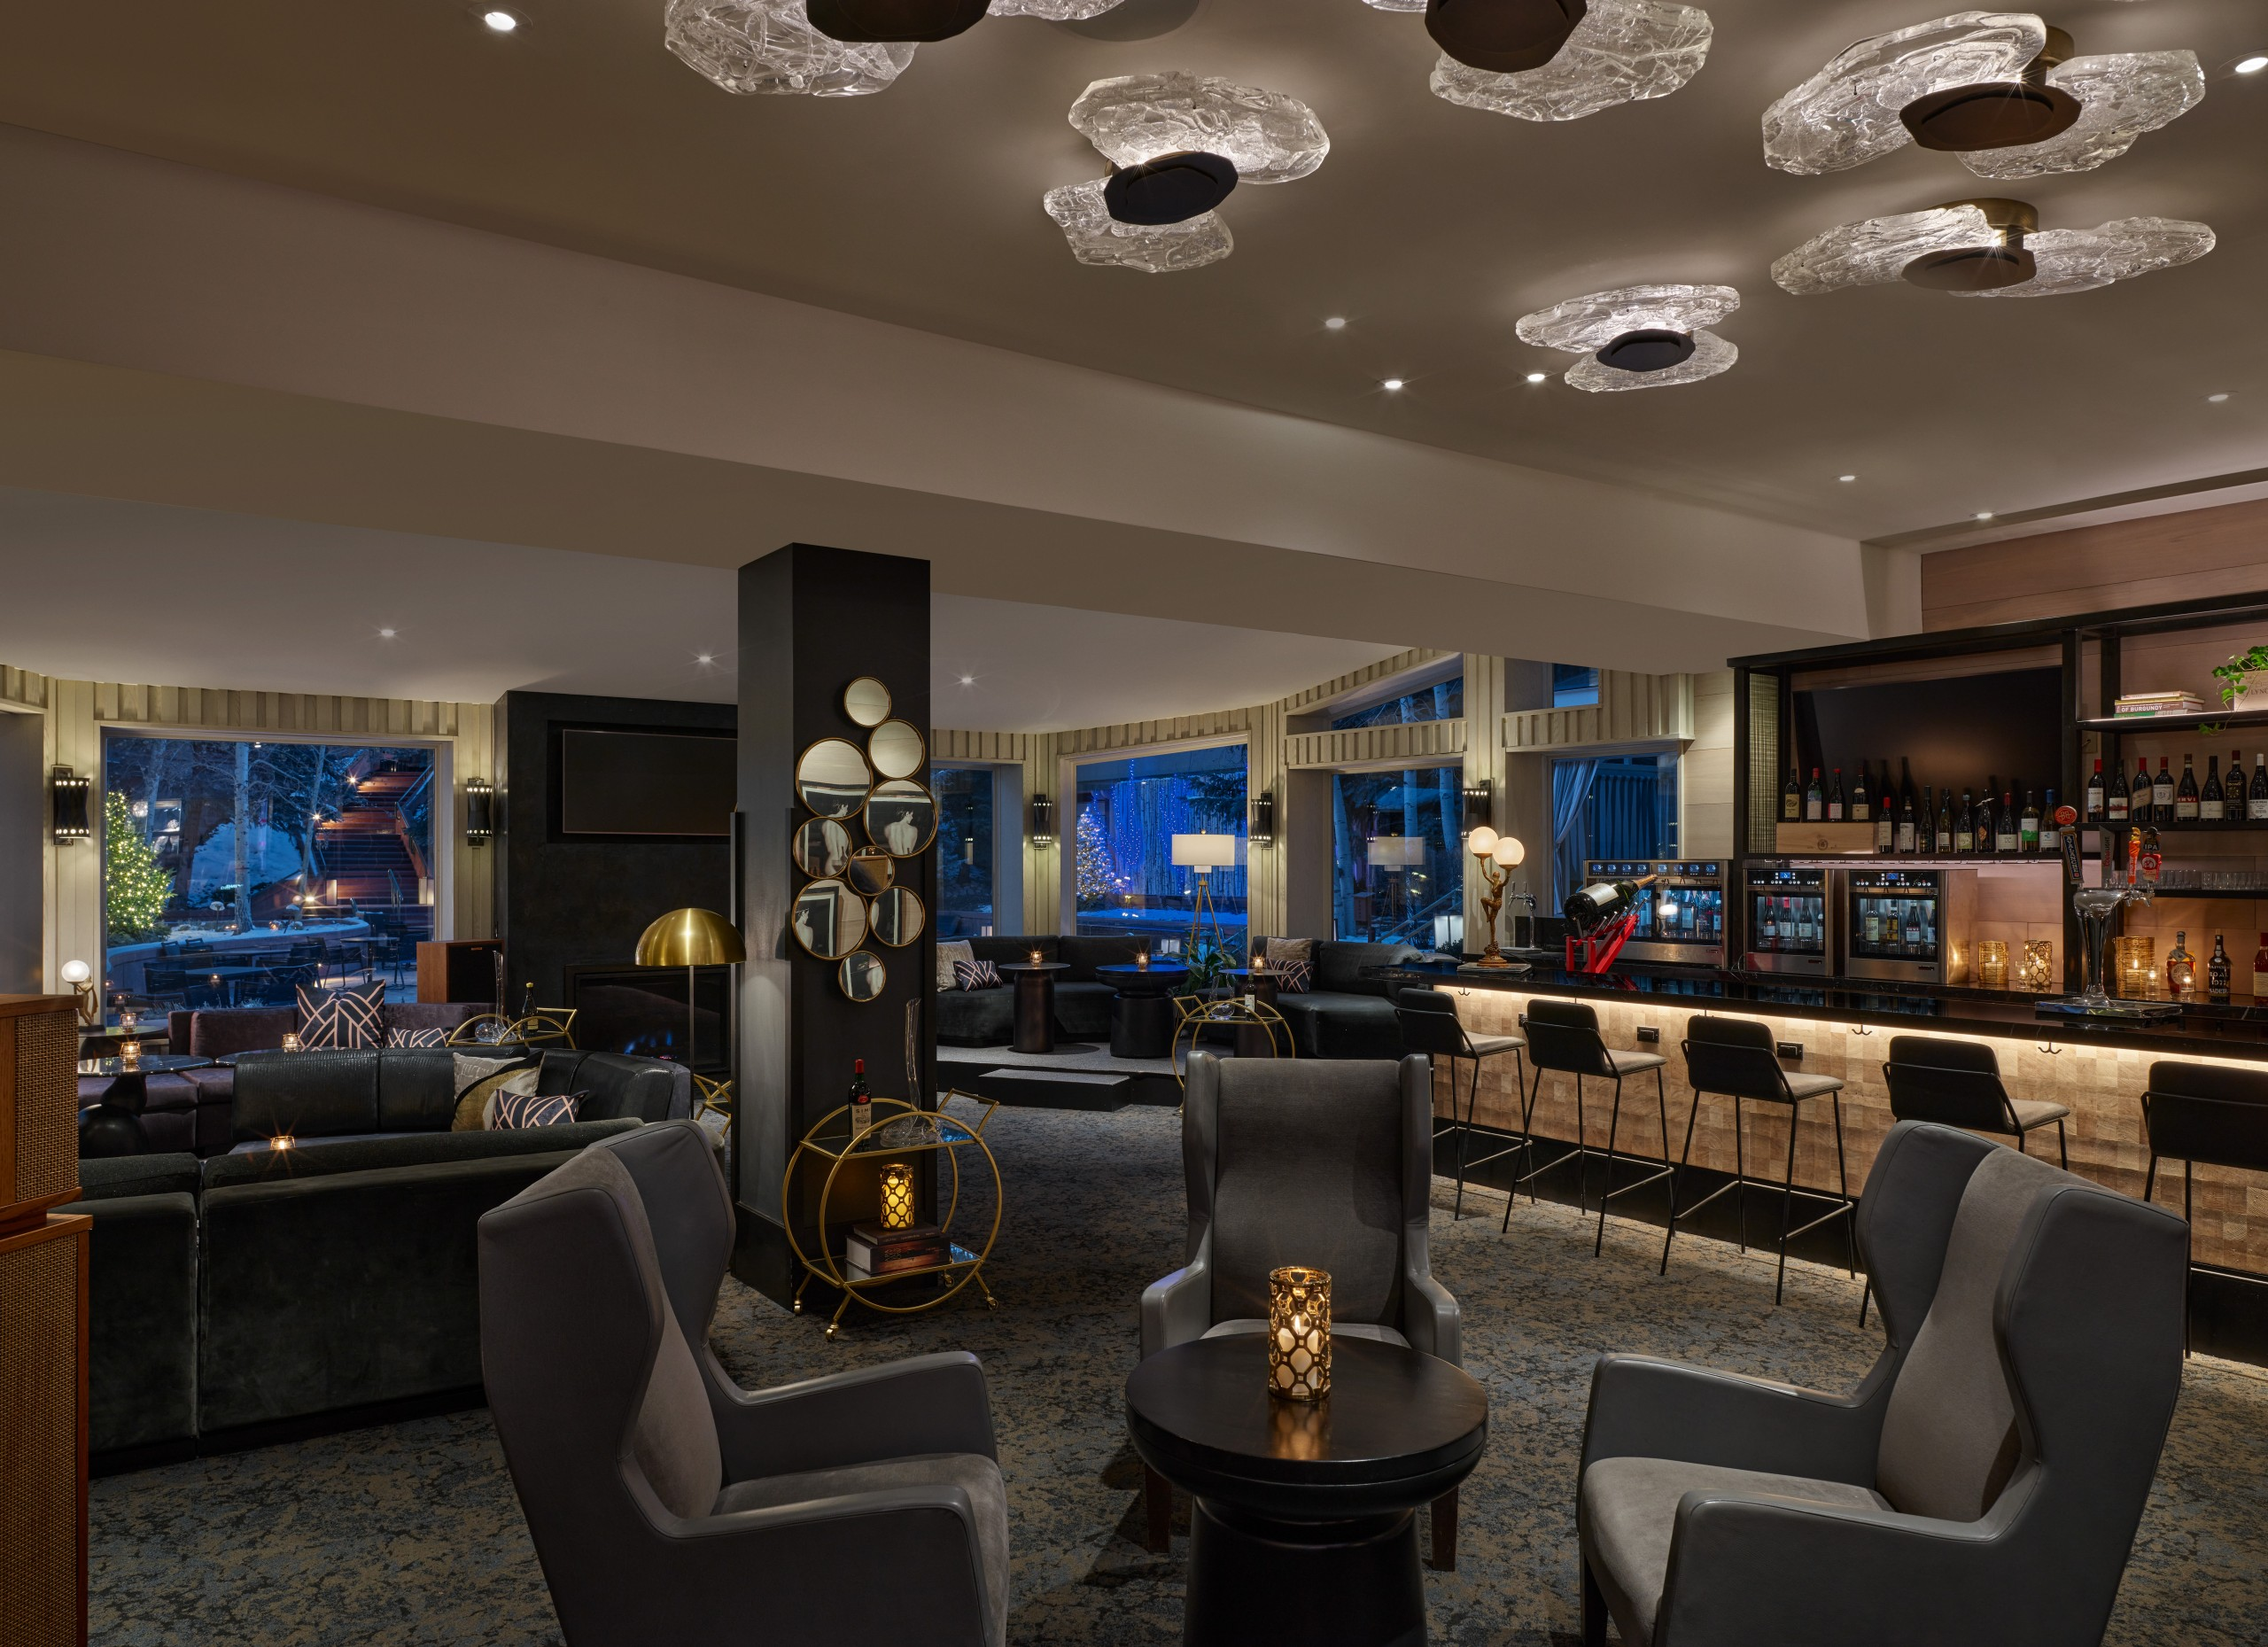 Web Highres Littlenell Winebar Overall2 37226